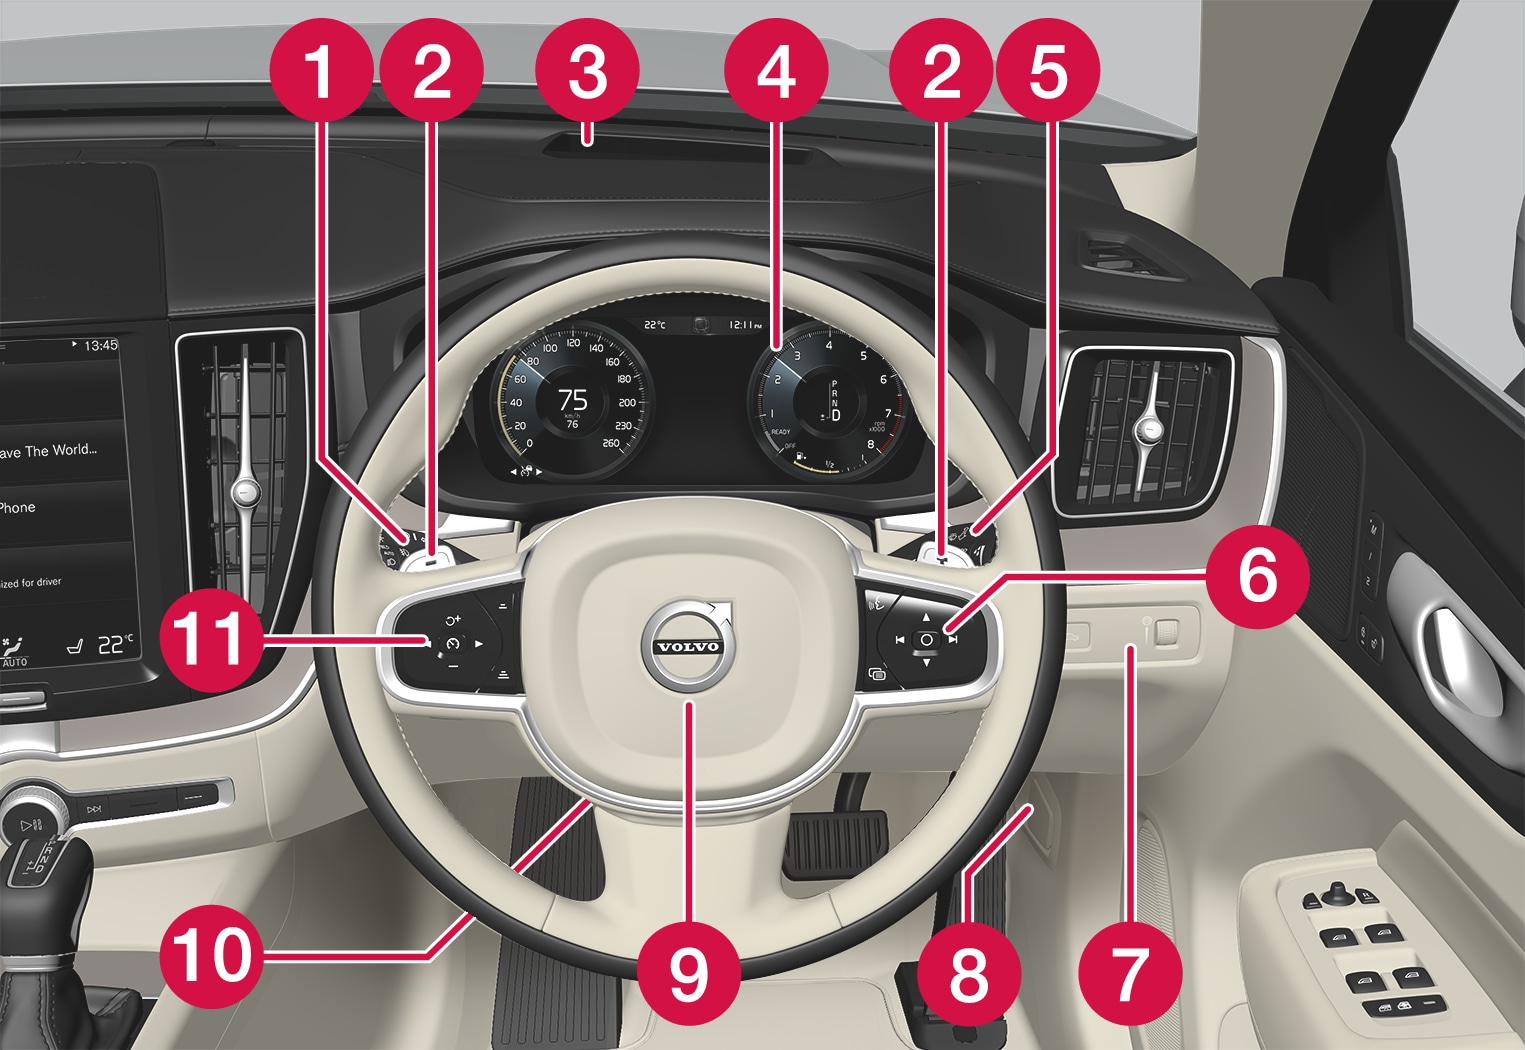 P5-XC60-1717-Instrument and controls overview, right hand drive